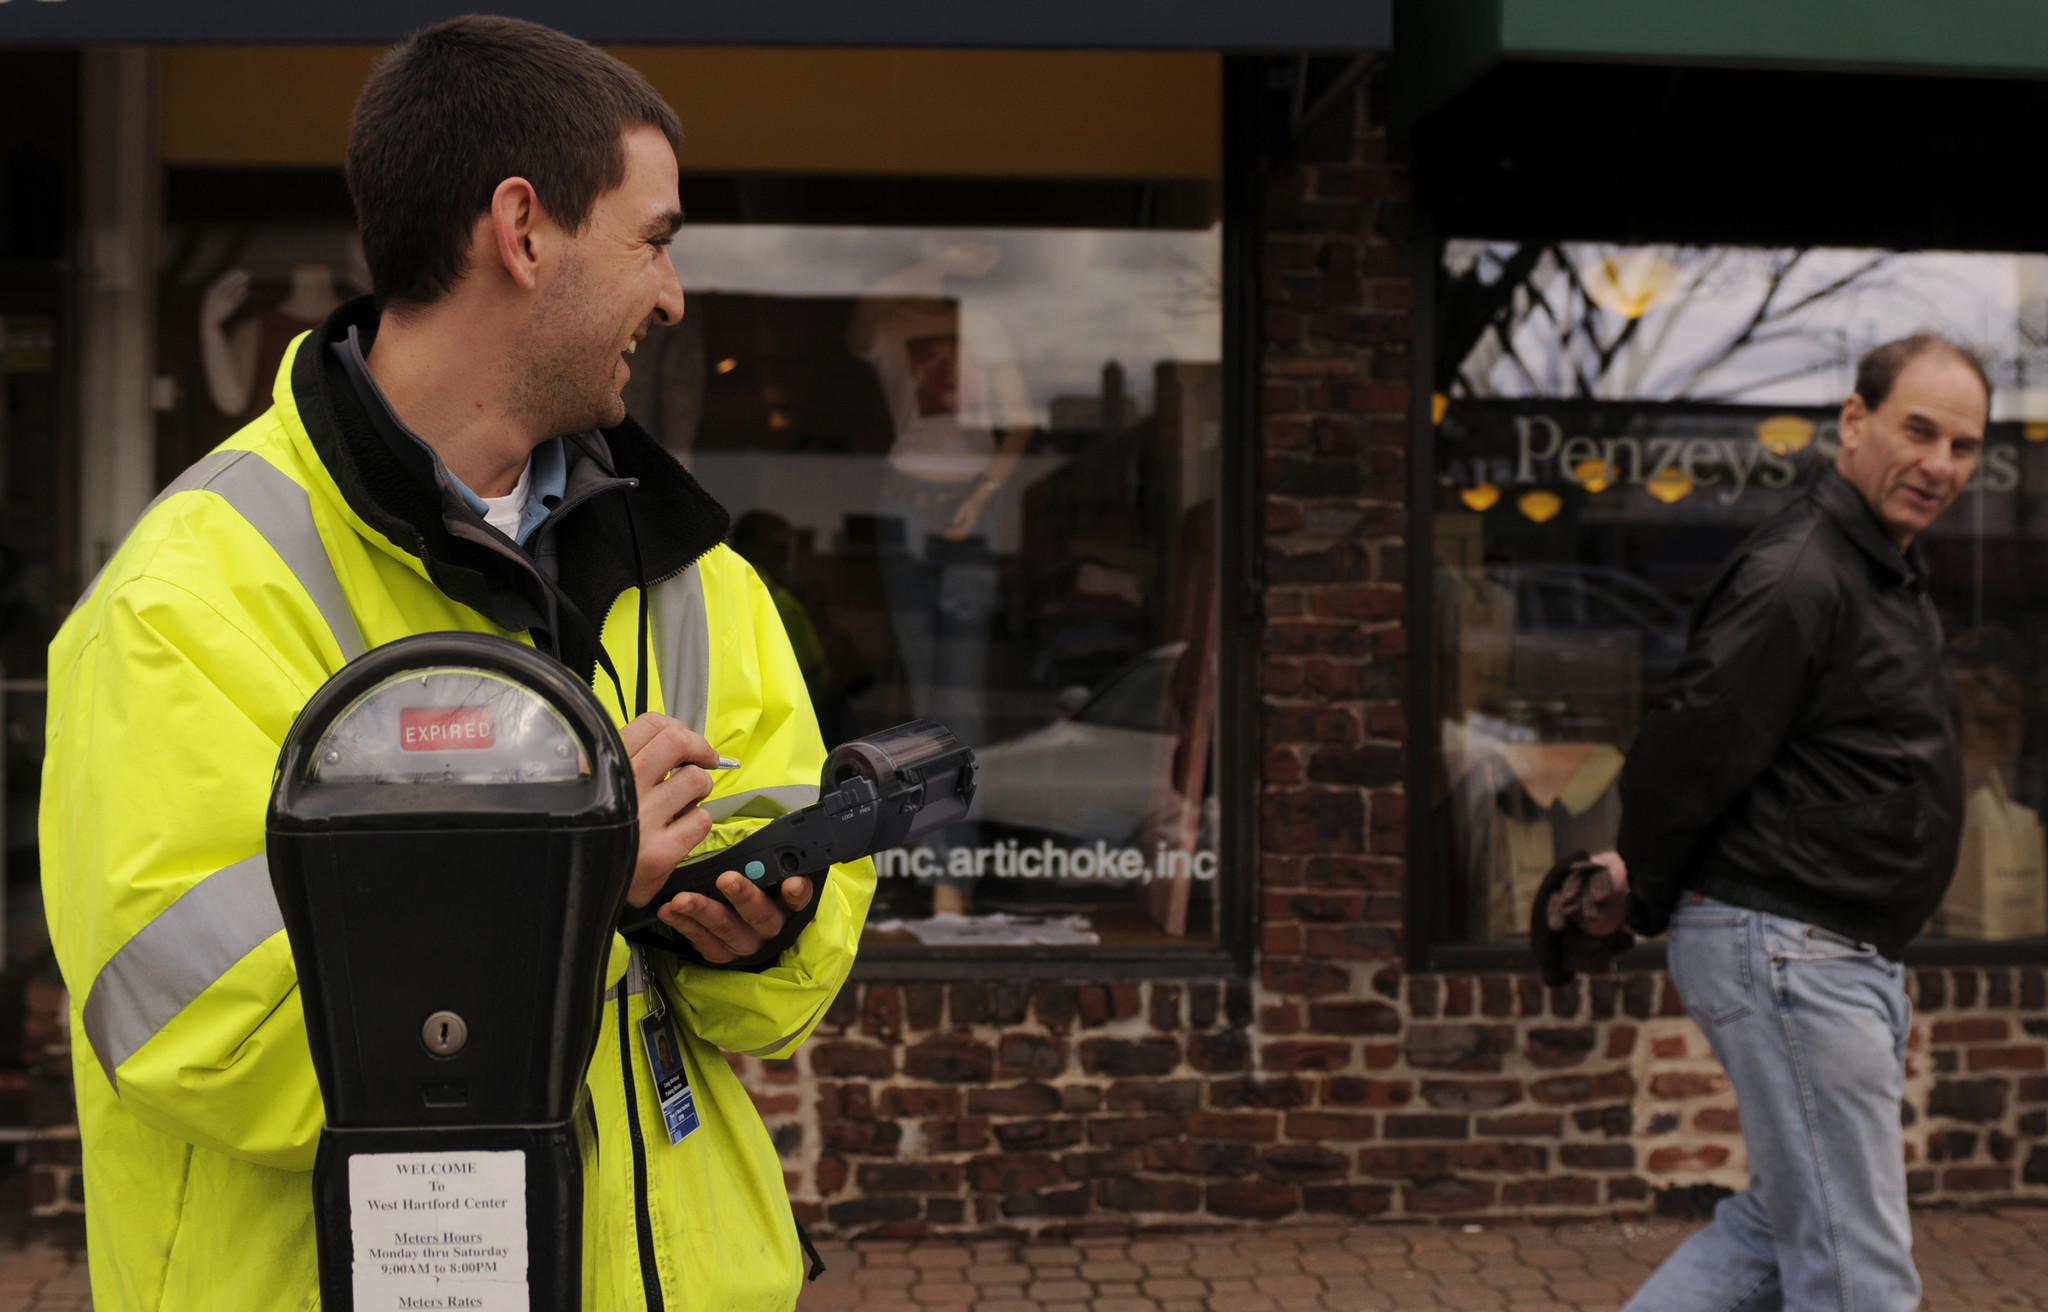 West Hartford parking monitor Greg Michaud (at left) responds to a passerby on LaSalle Road while writing out a parking ticket in 2011.